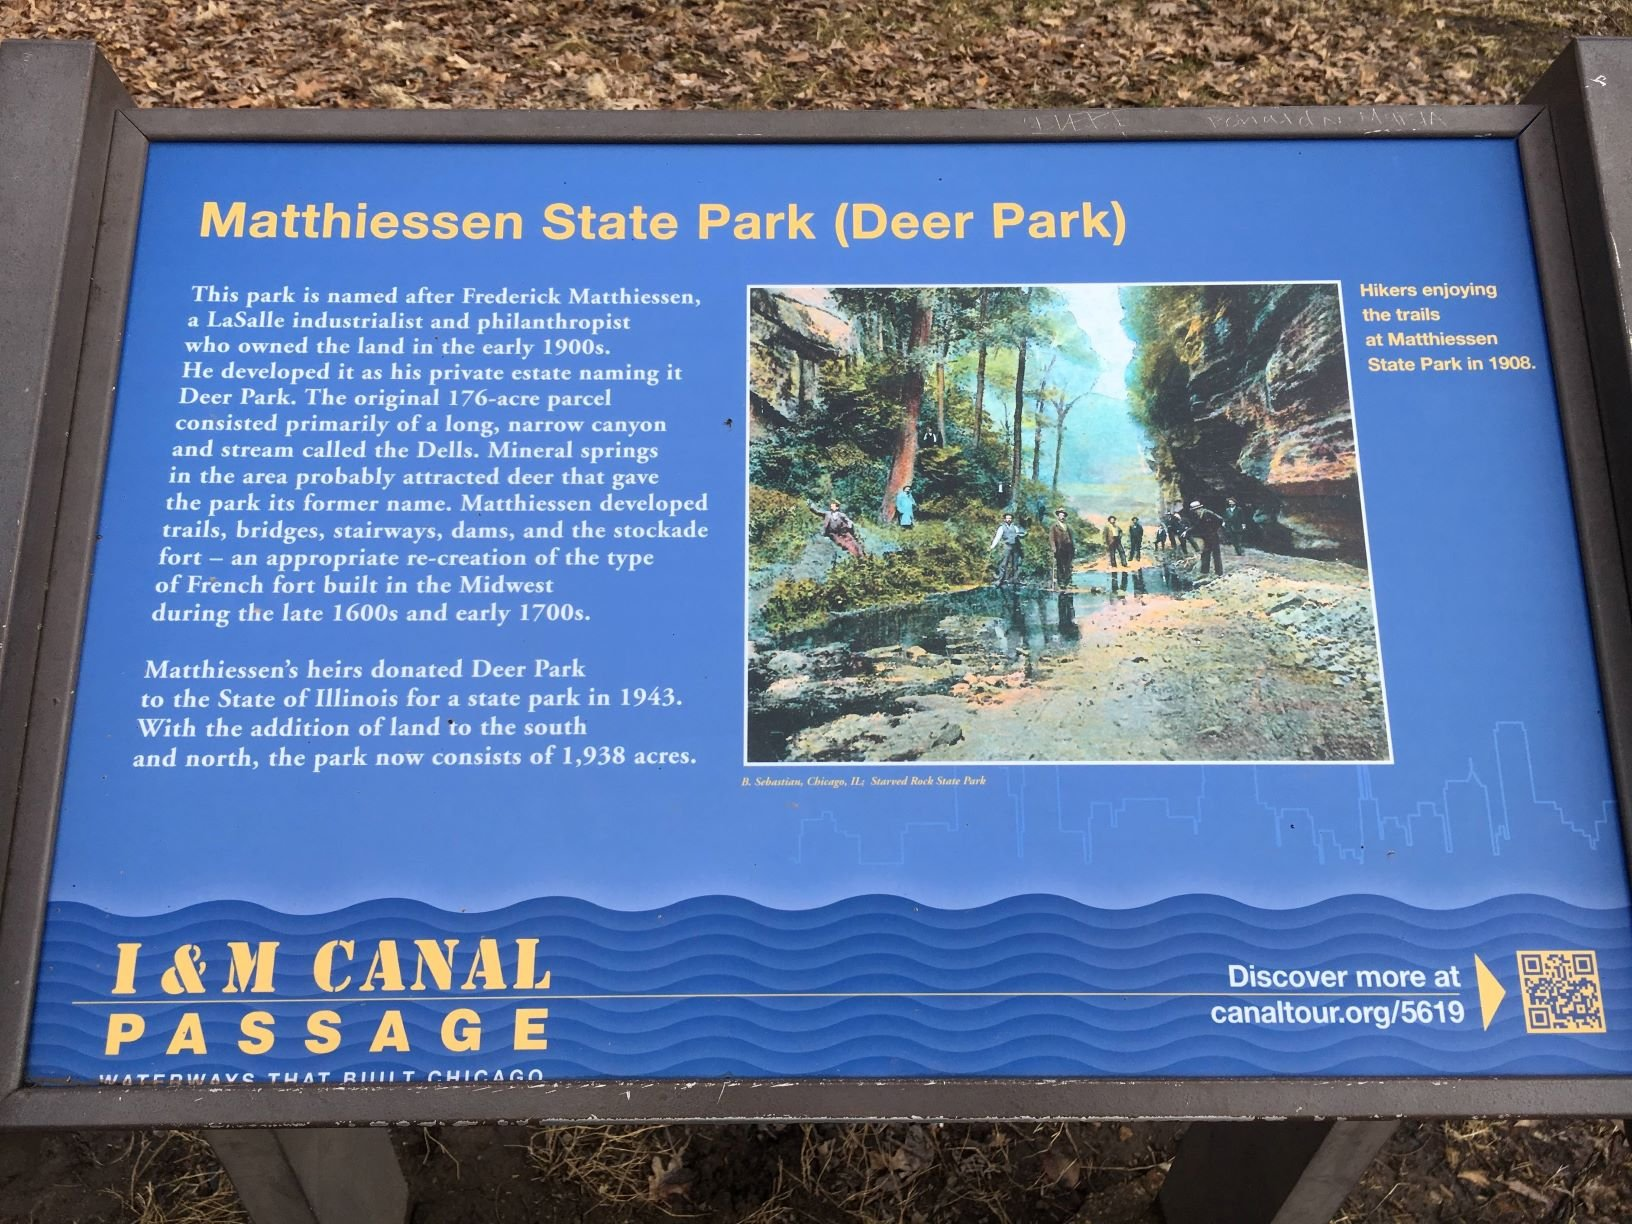 A sign that has a brief history of how Matthiessen State Park came to be.